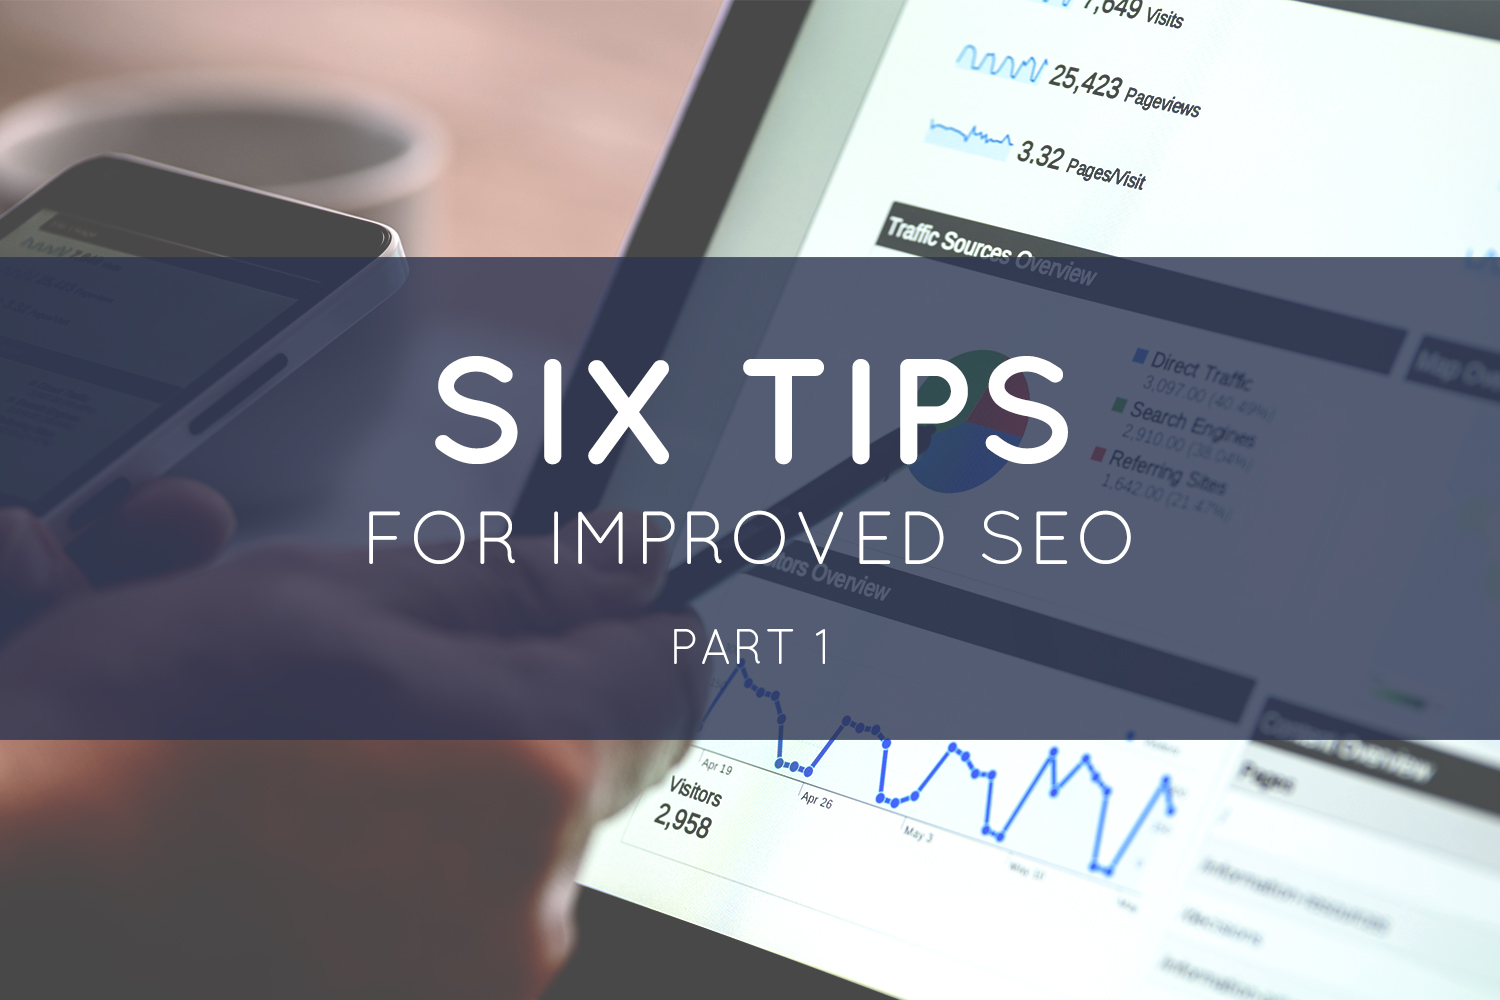 6 Tips for Improved SEO (Part 1)